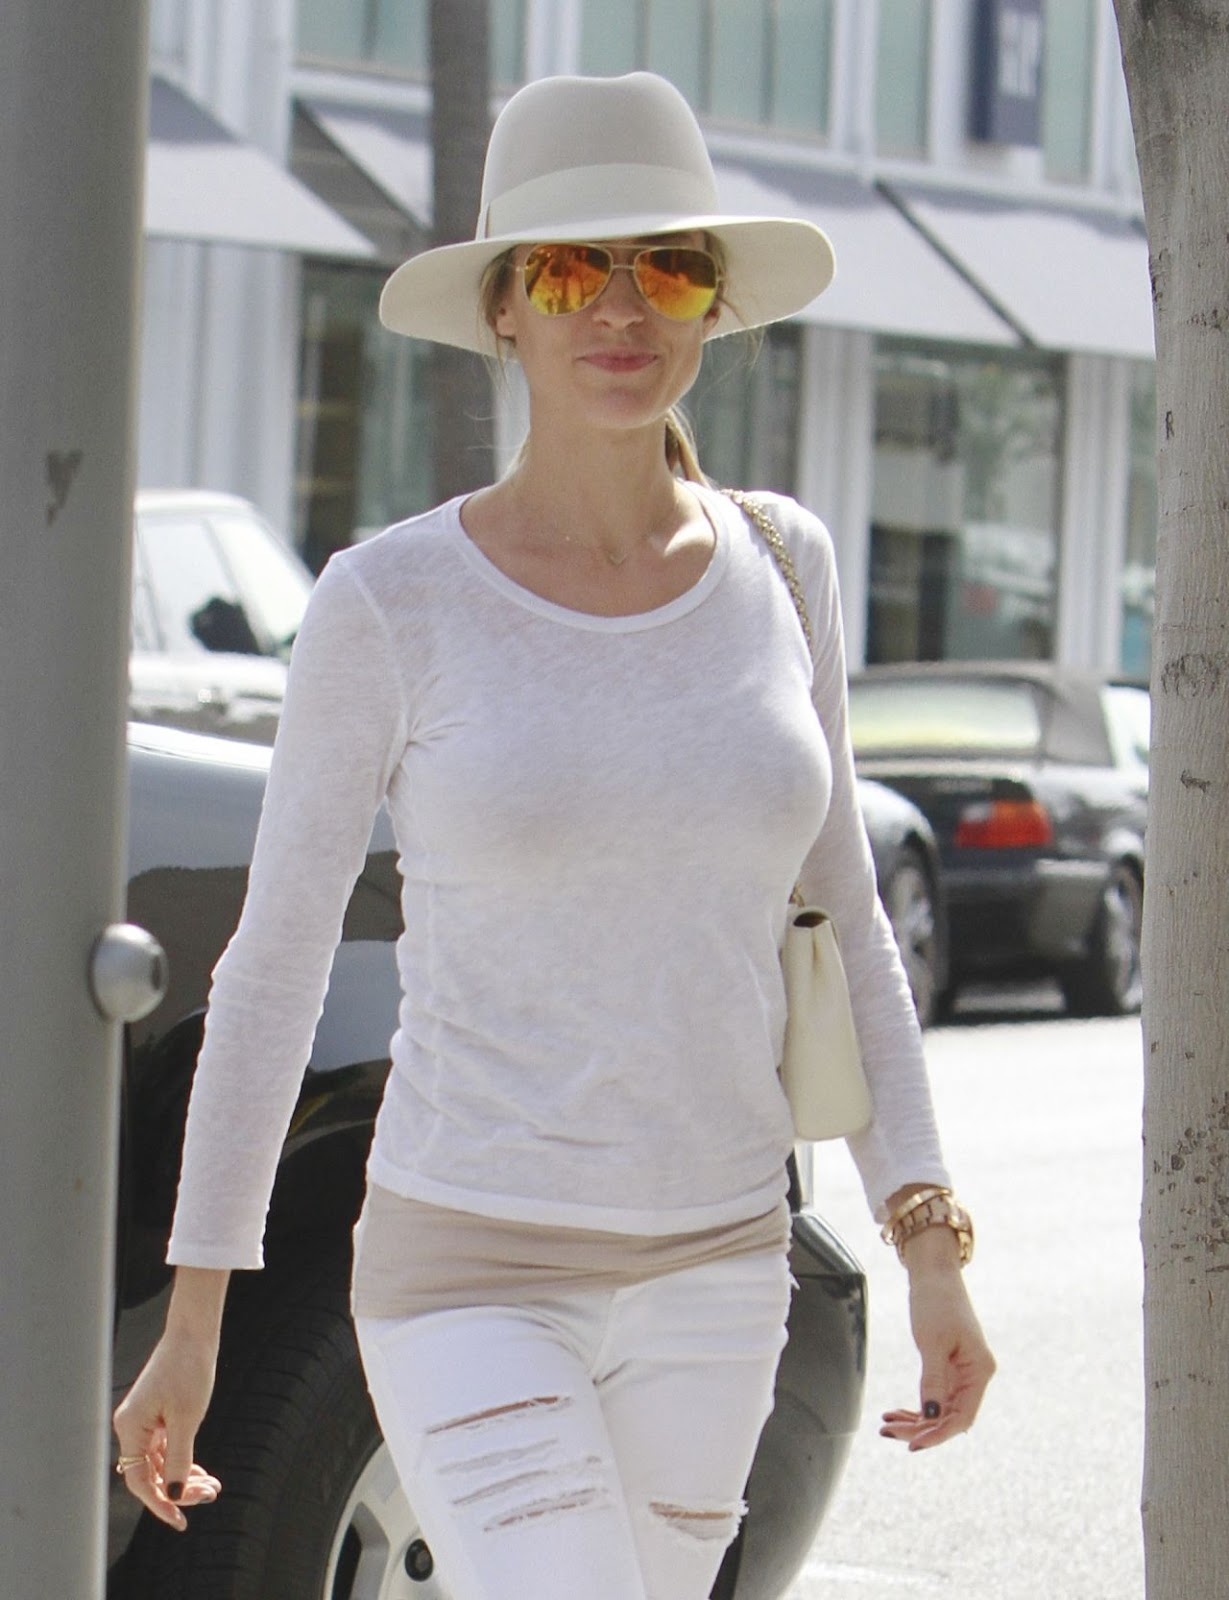 Kristin Cavallari is chic in head-to-toe white out and about in Beverly Hills